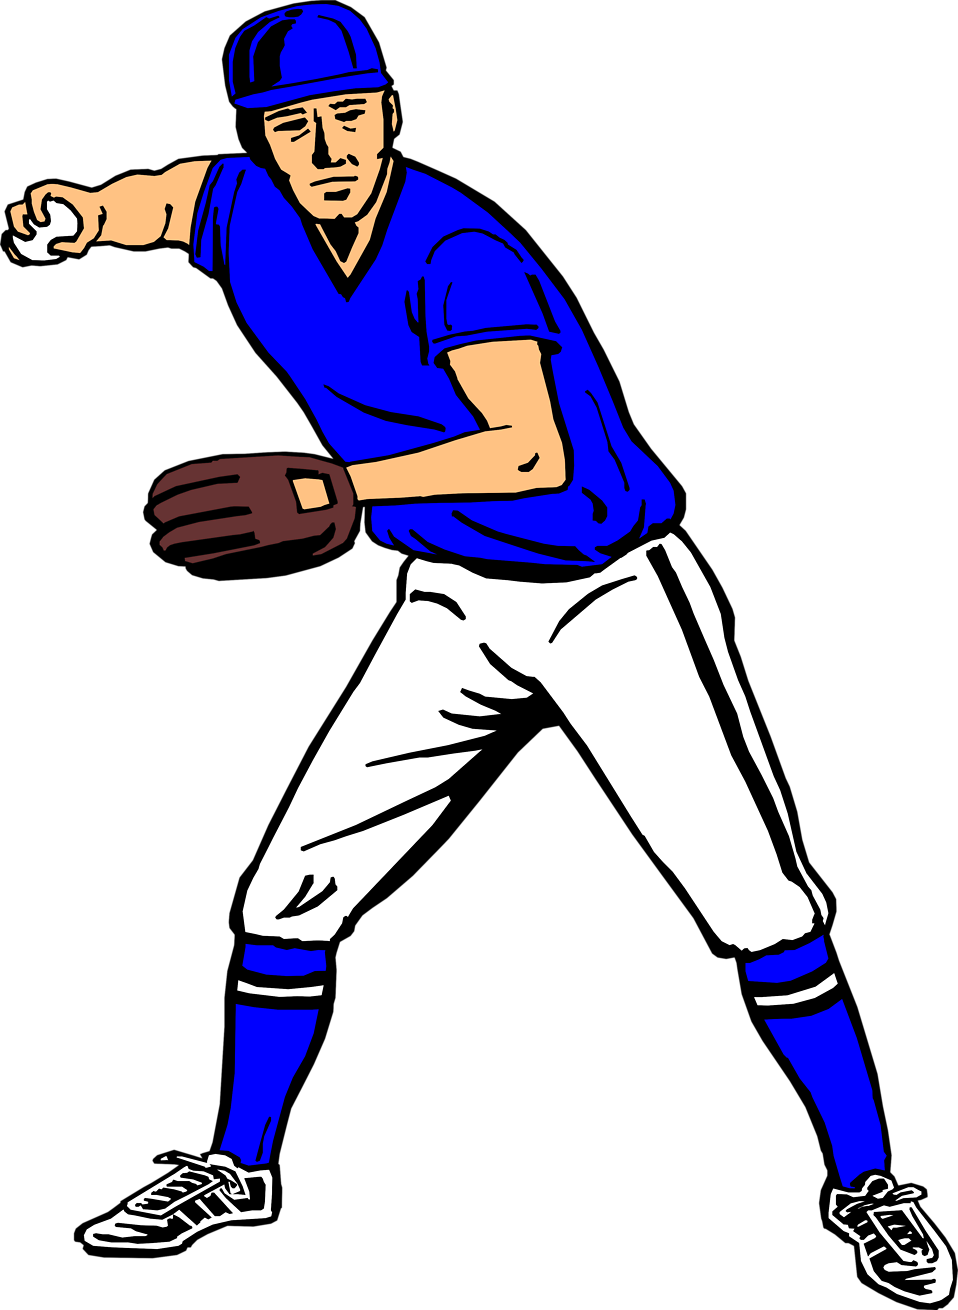 free clipart of a baseball player - photo #14